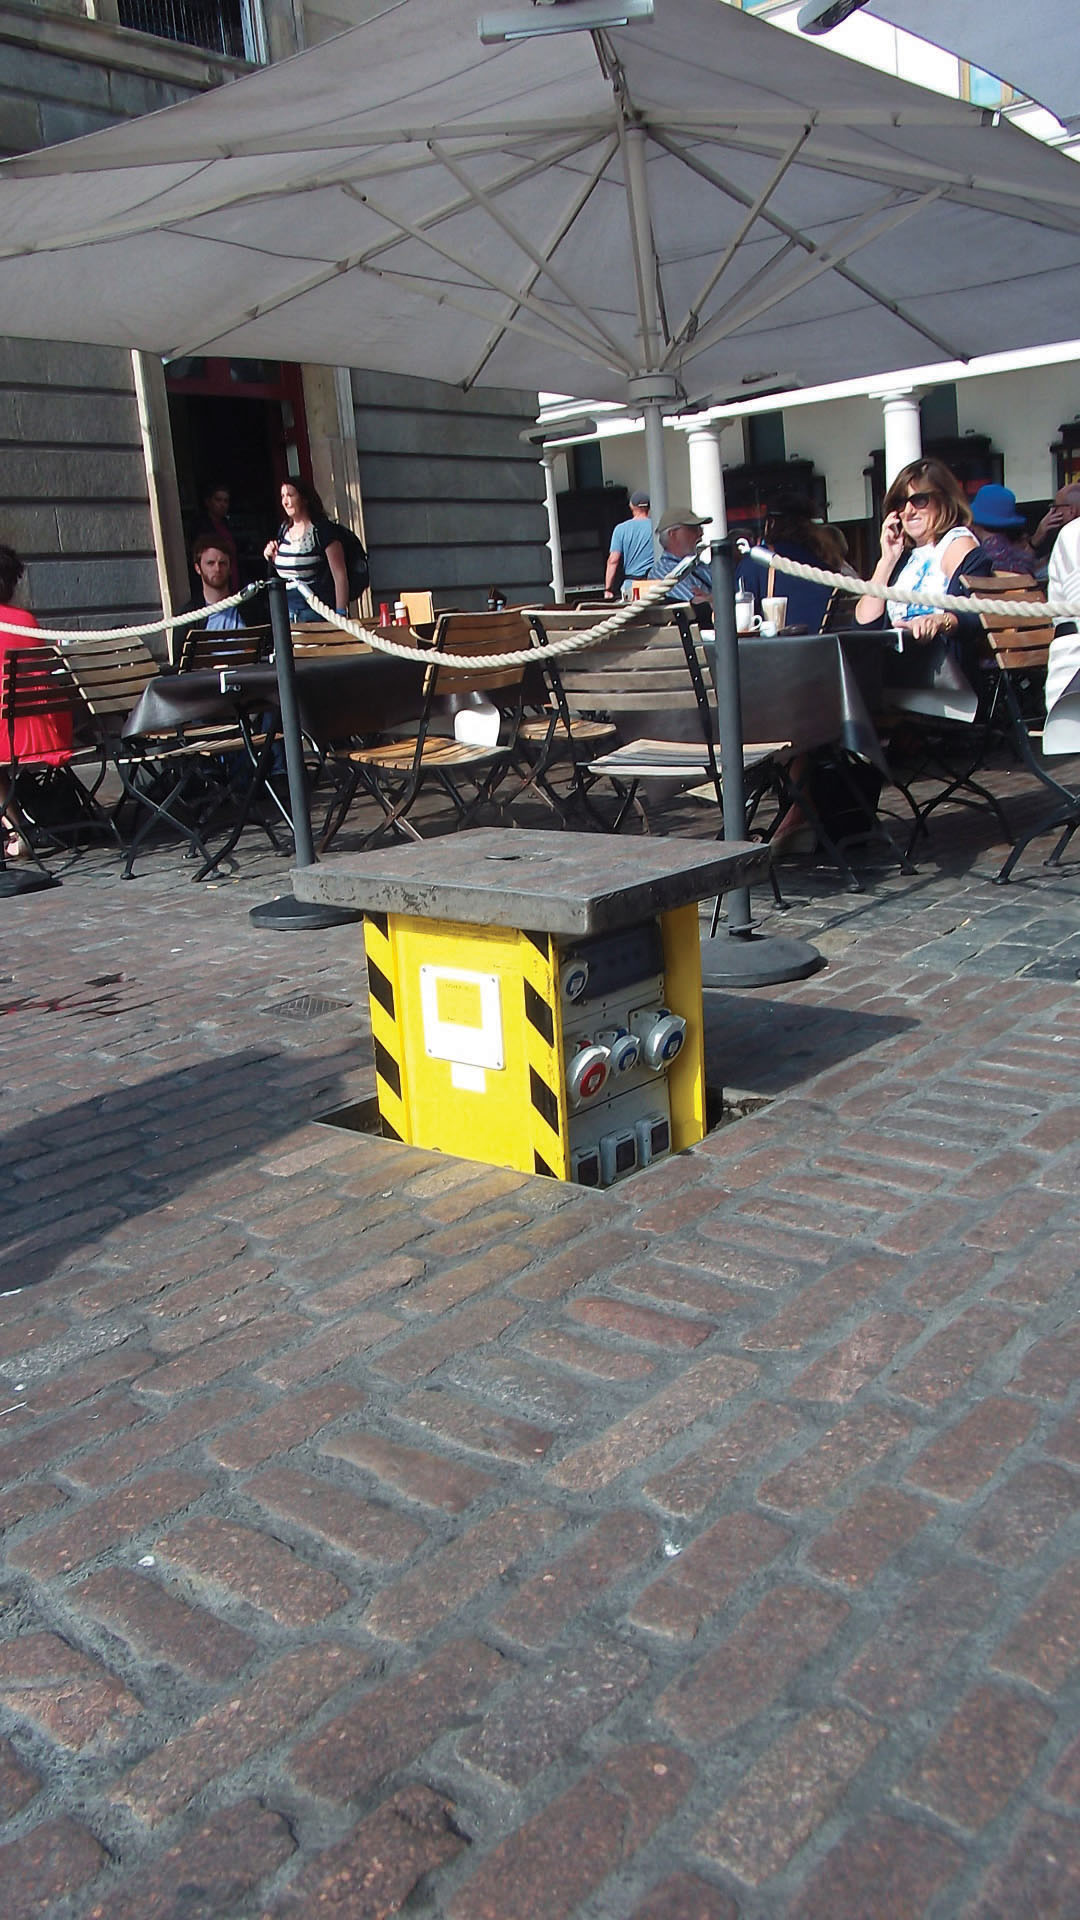 Easy and safe in-ground power units for public spaces